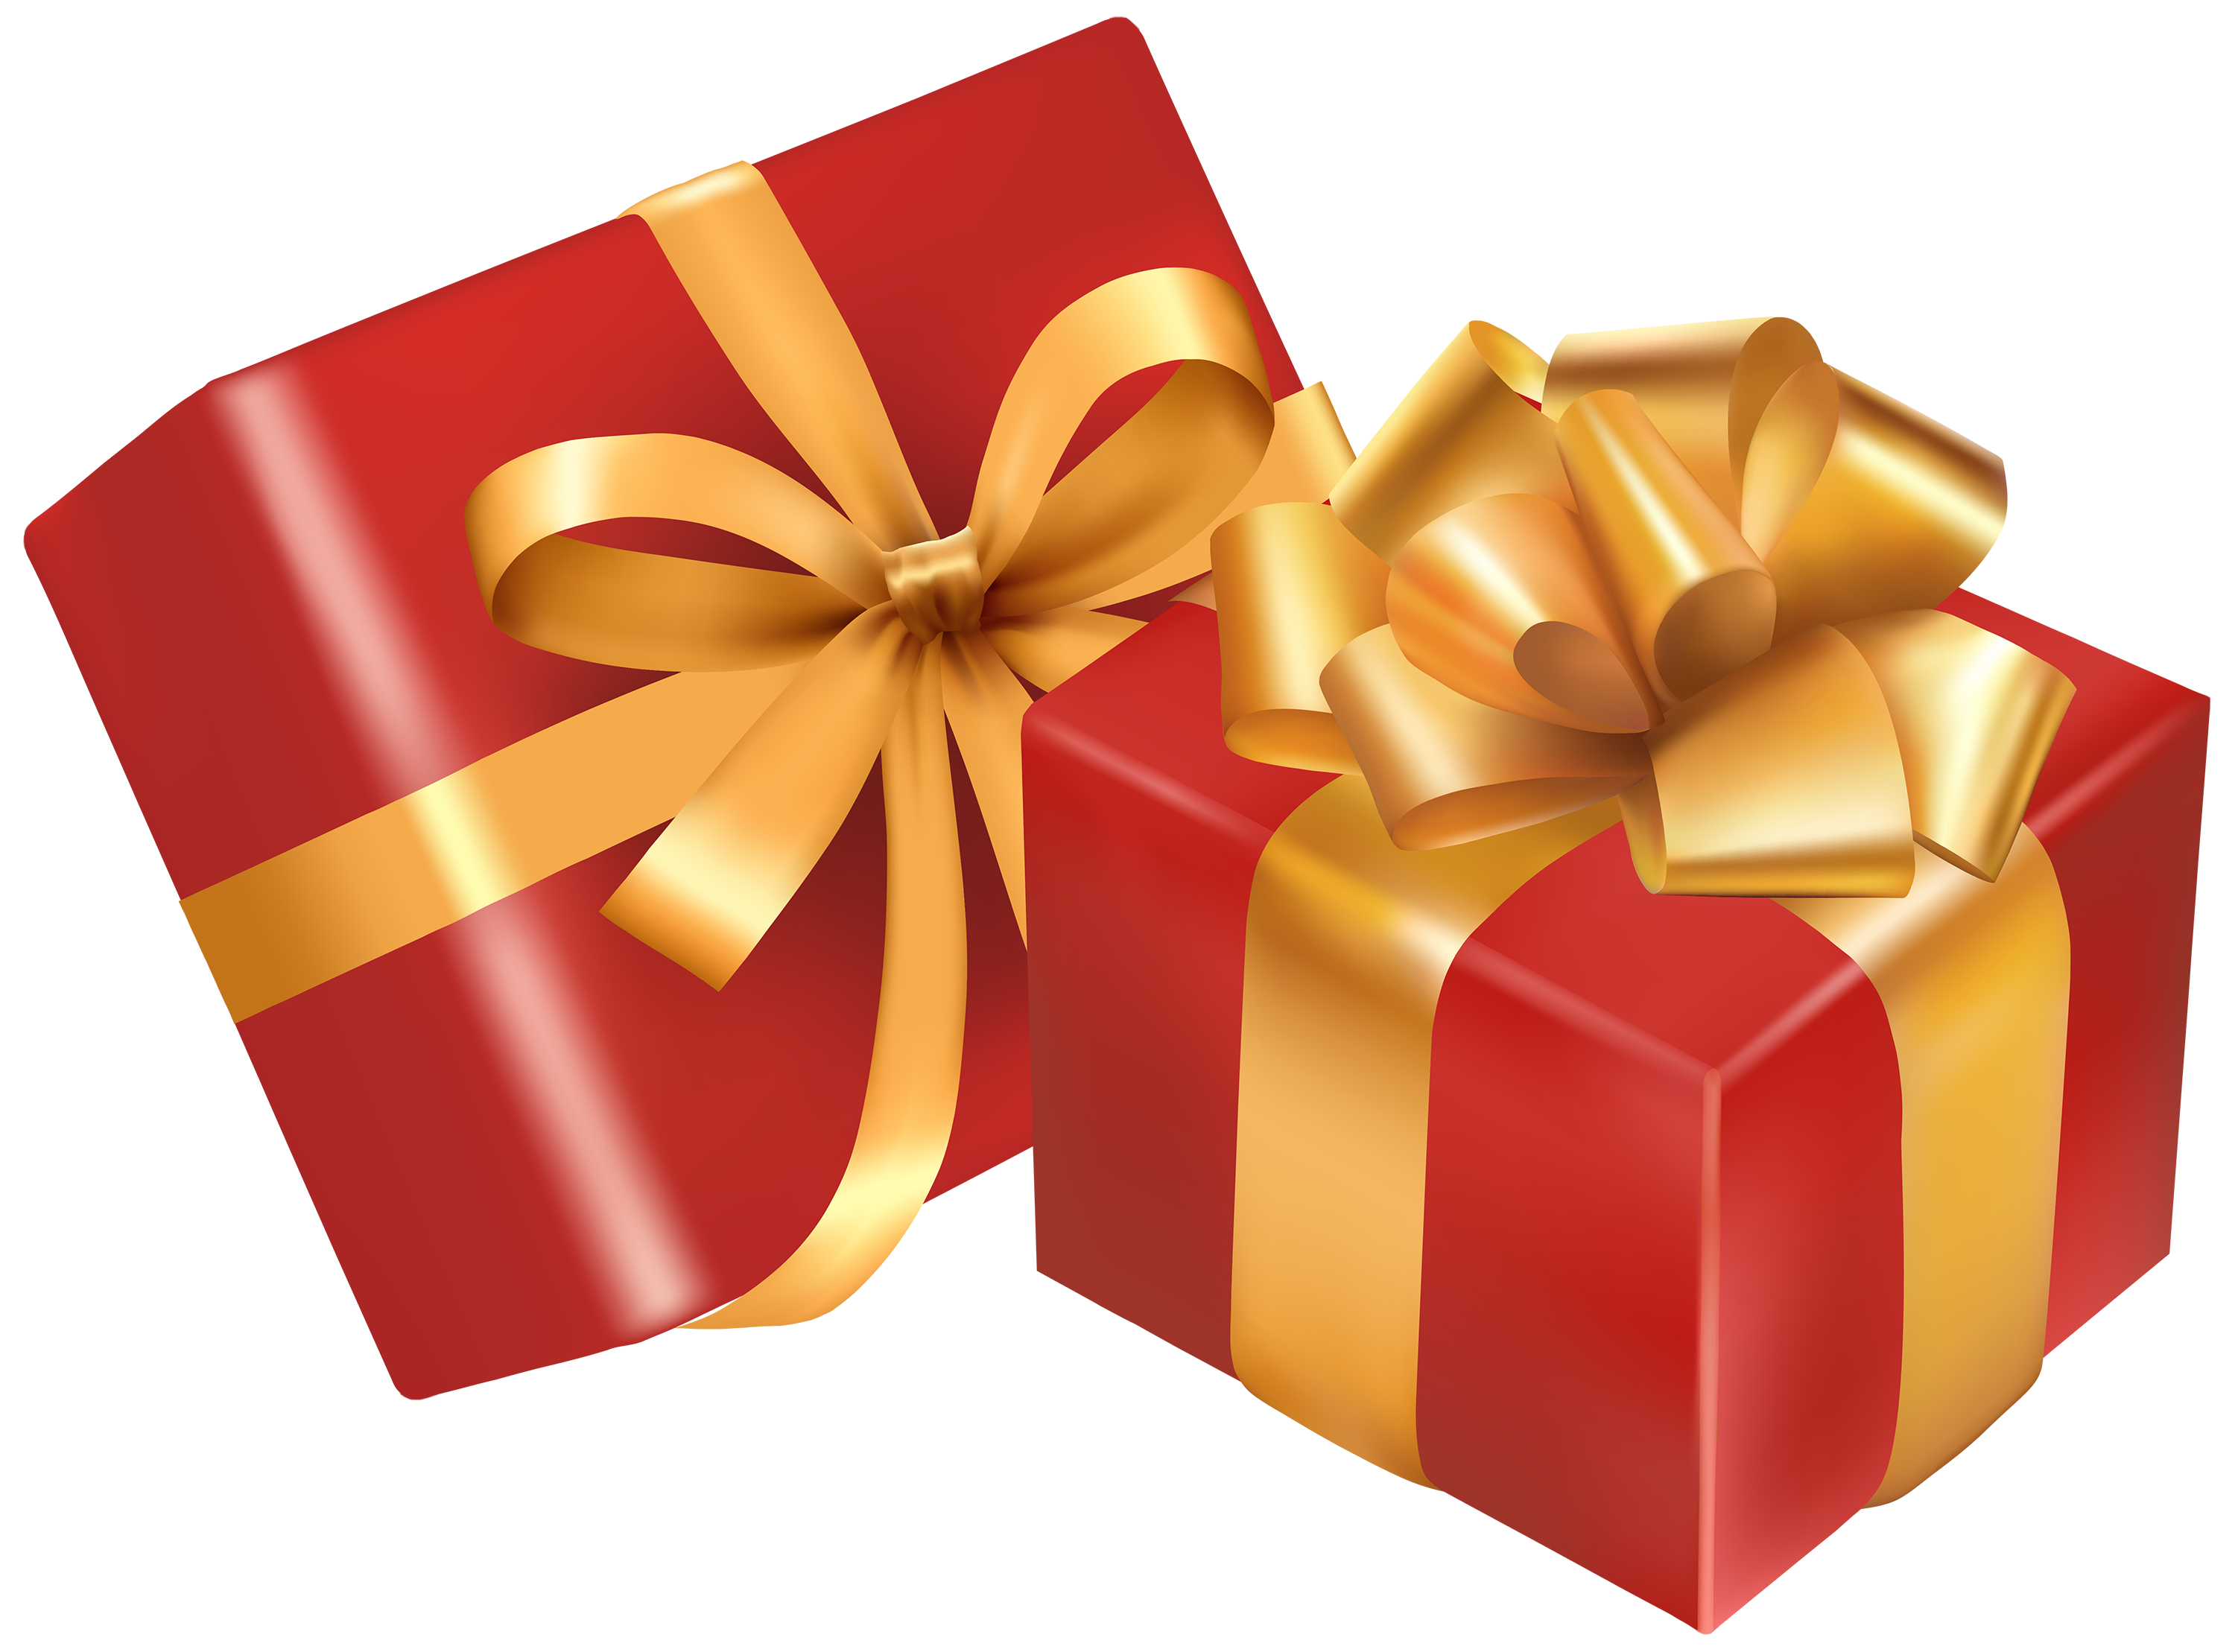 Gift Two Day Boxes Christmas Red PNG Image